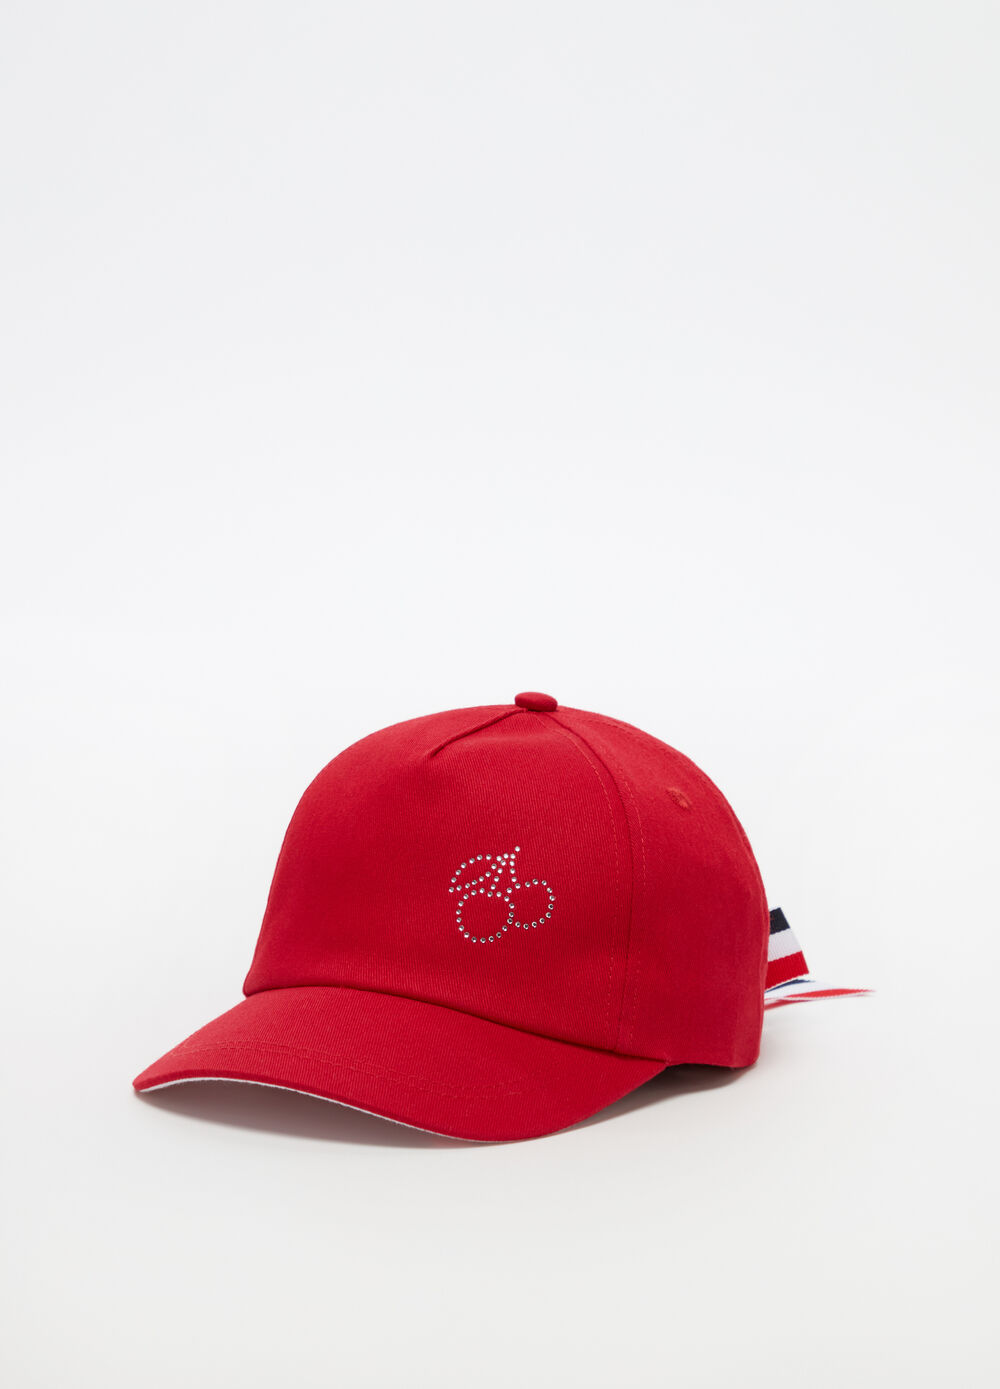 Solid colour hat with cherry motif diamantés